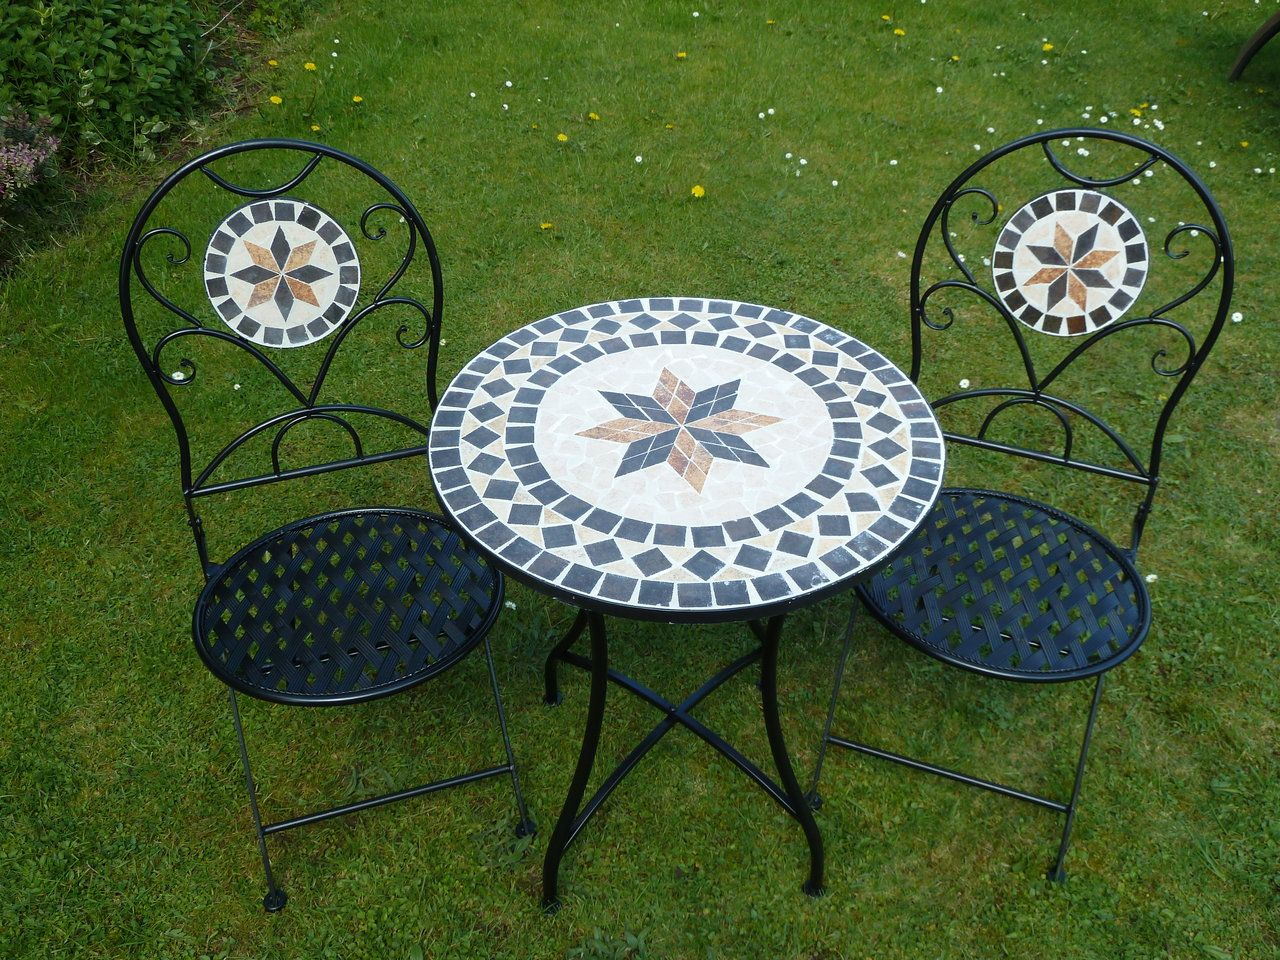 Mosaic Bistro Table Sets | Piece Metal Mosaic Bistro Set For Two 60cm Table  And 2